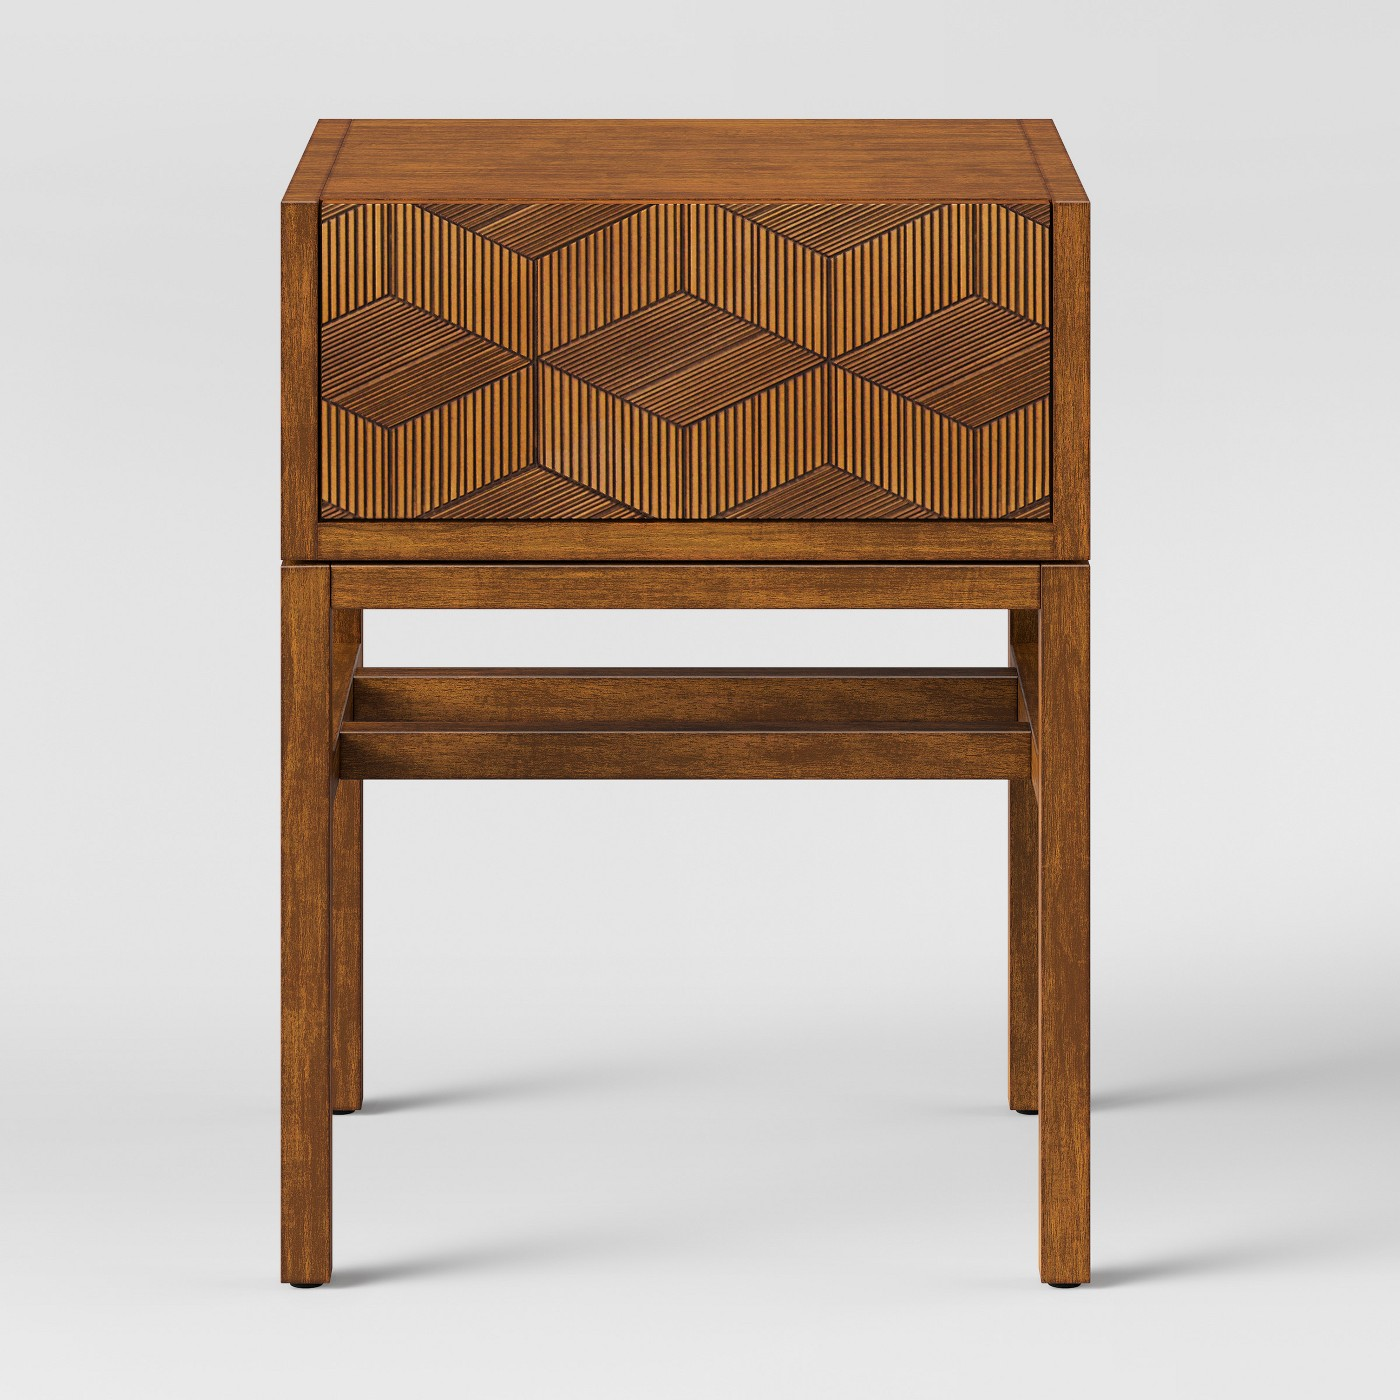 end tables target home that upgrade your living trestle accent table room for less than knotty pine bar stools mini tiffany lamps narrow side with shelves affordable dining chairs